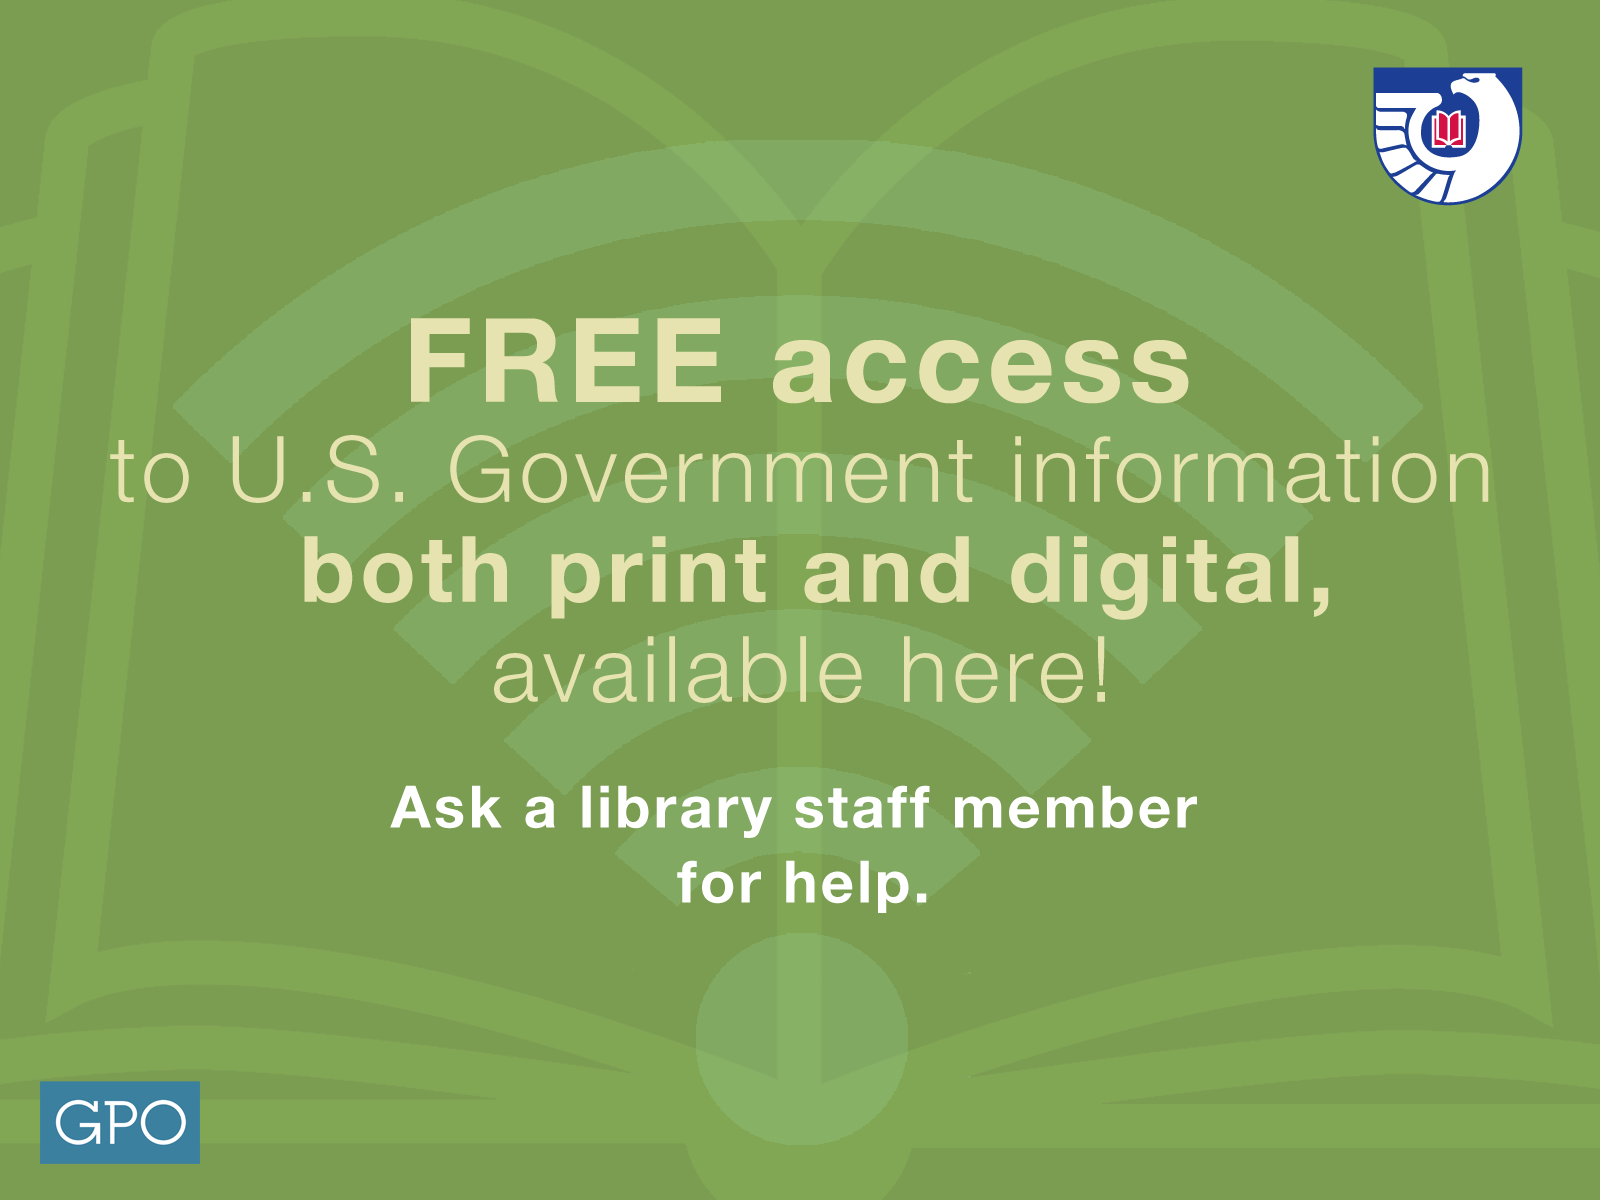 Access to free government information in the Library